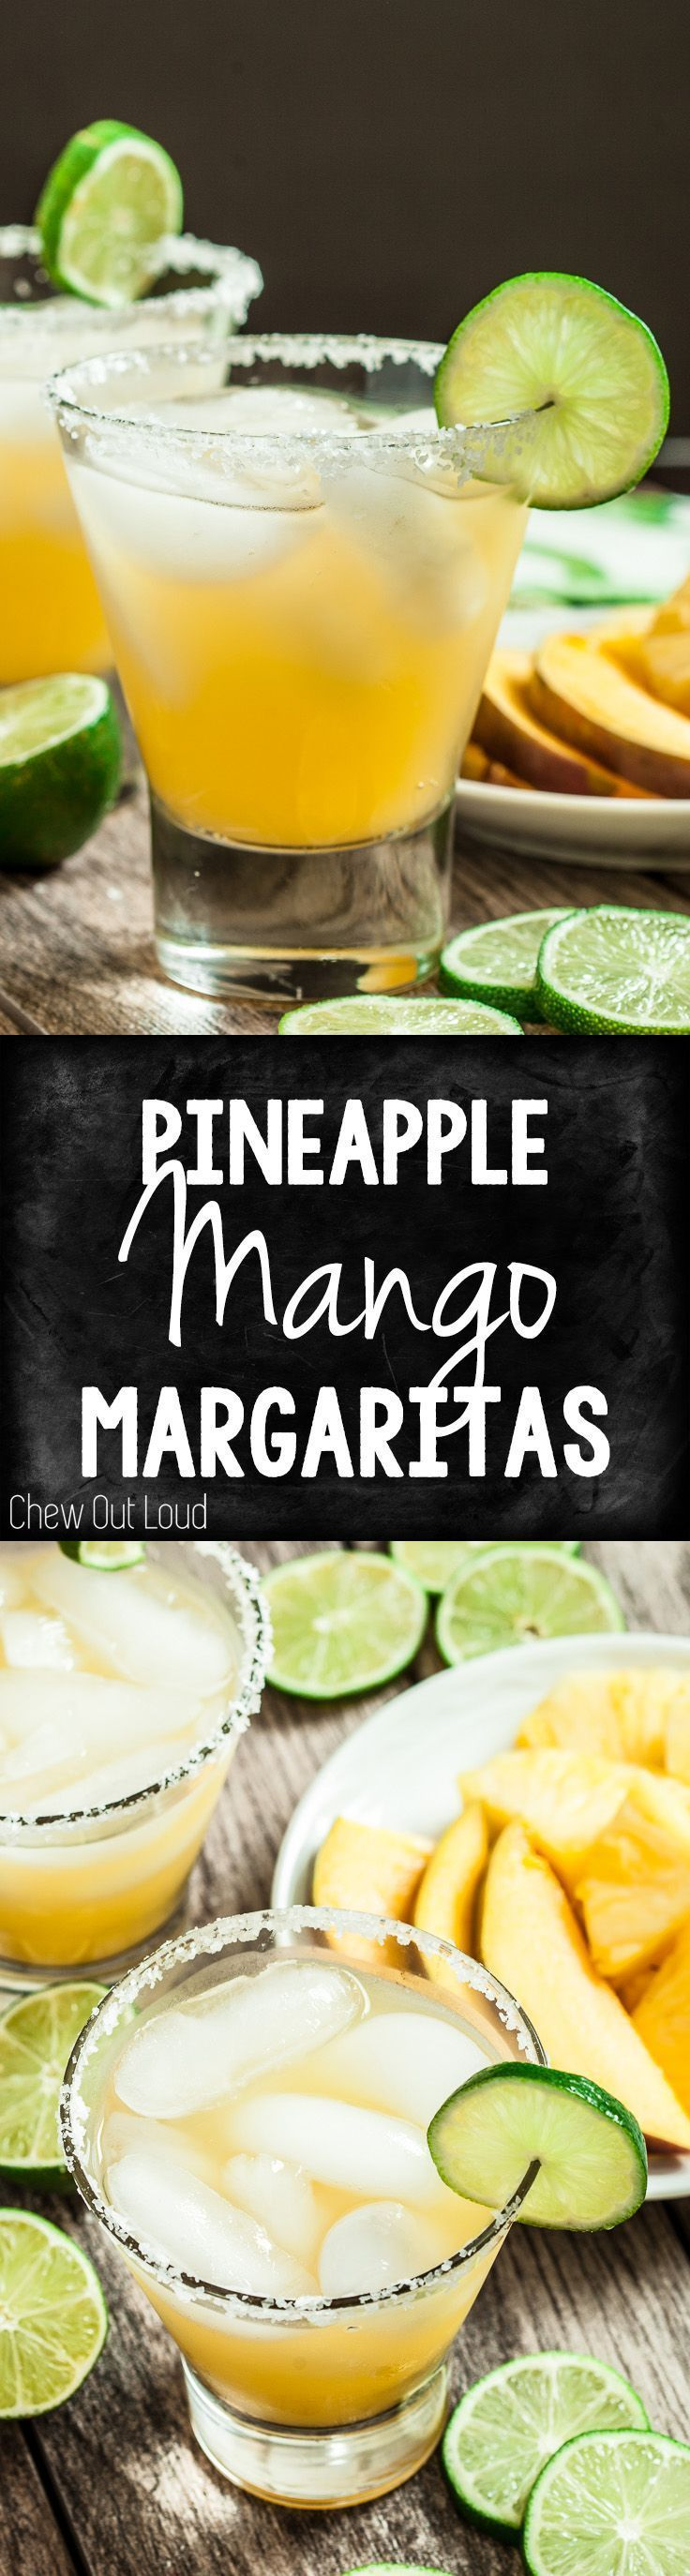 4-Ingredients. Tropical margaritas perfect for summer!